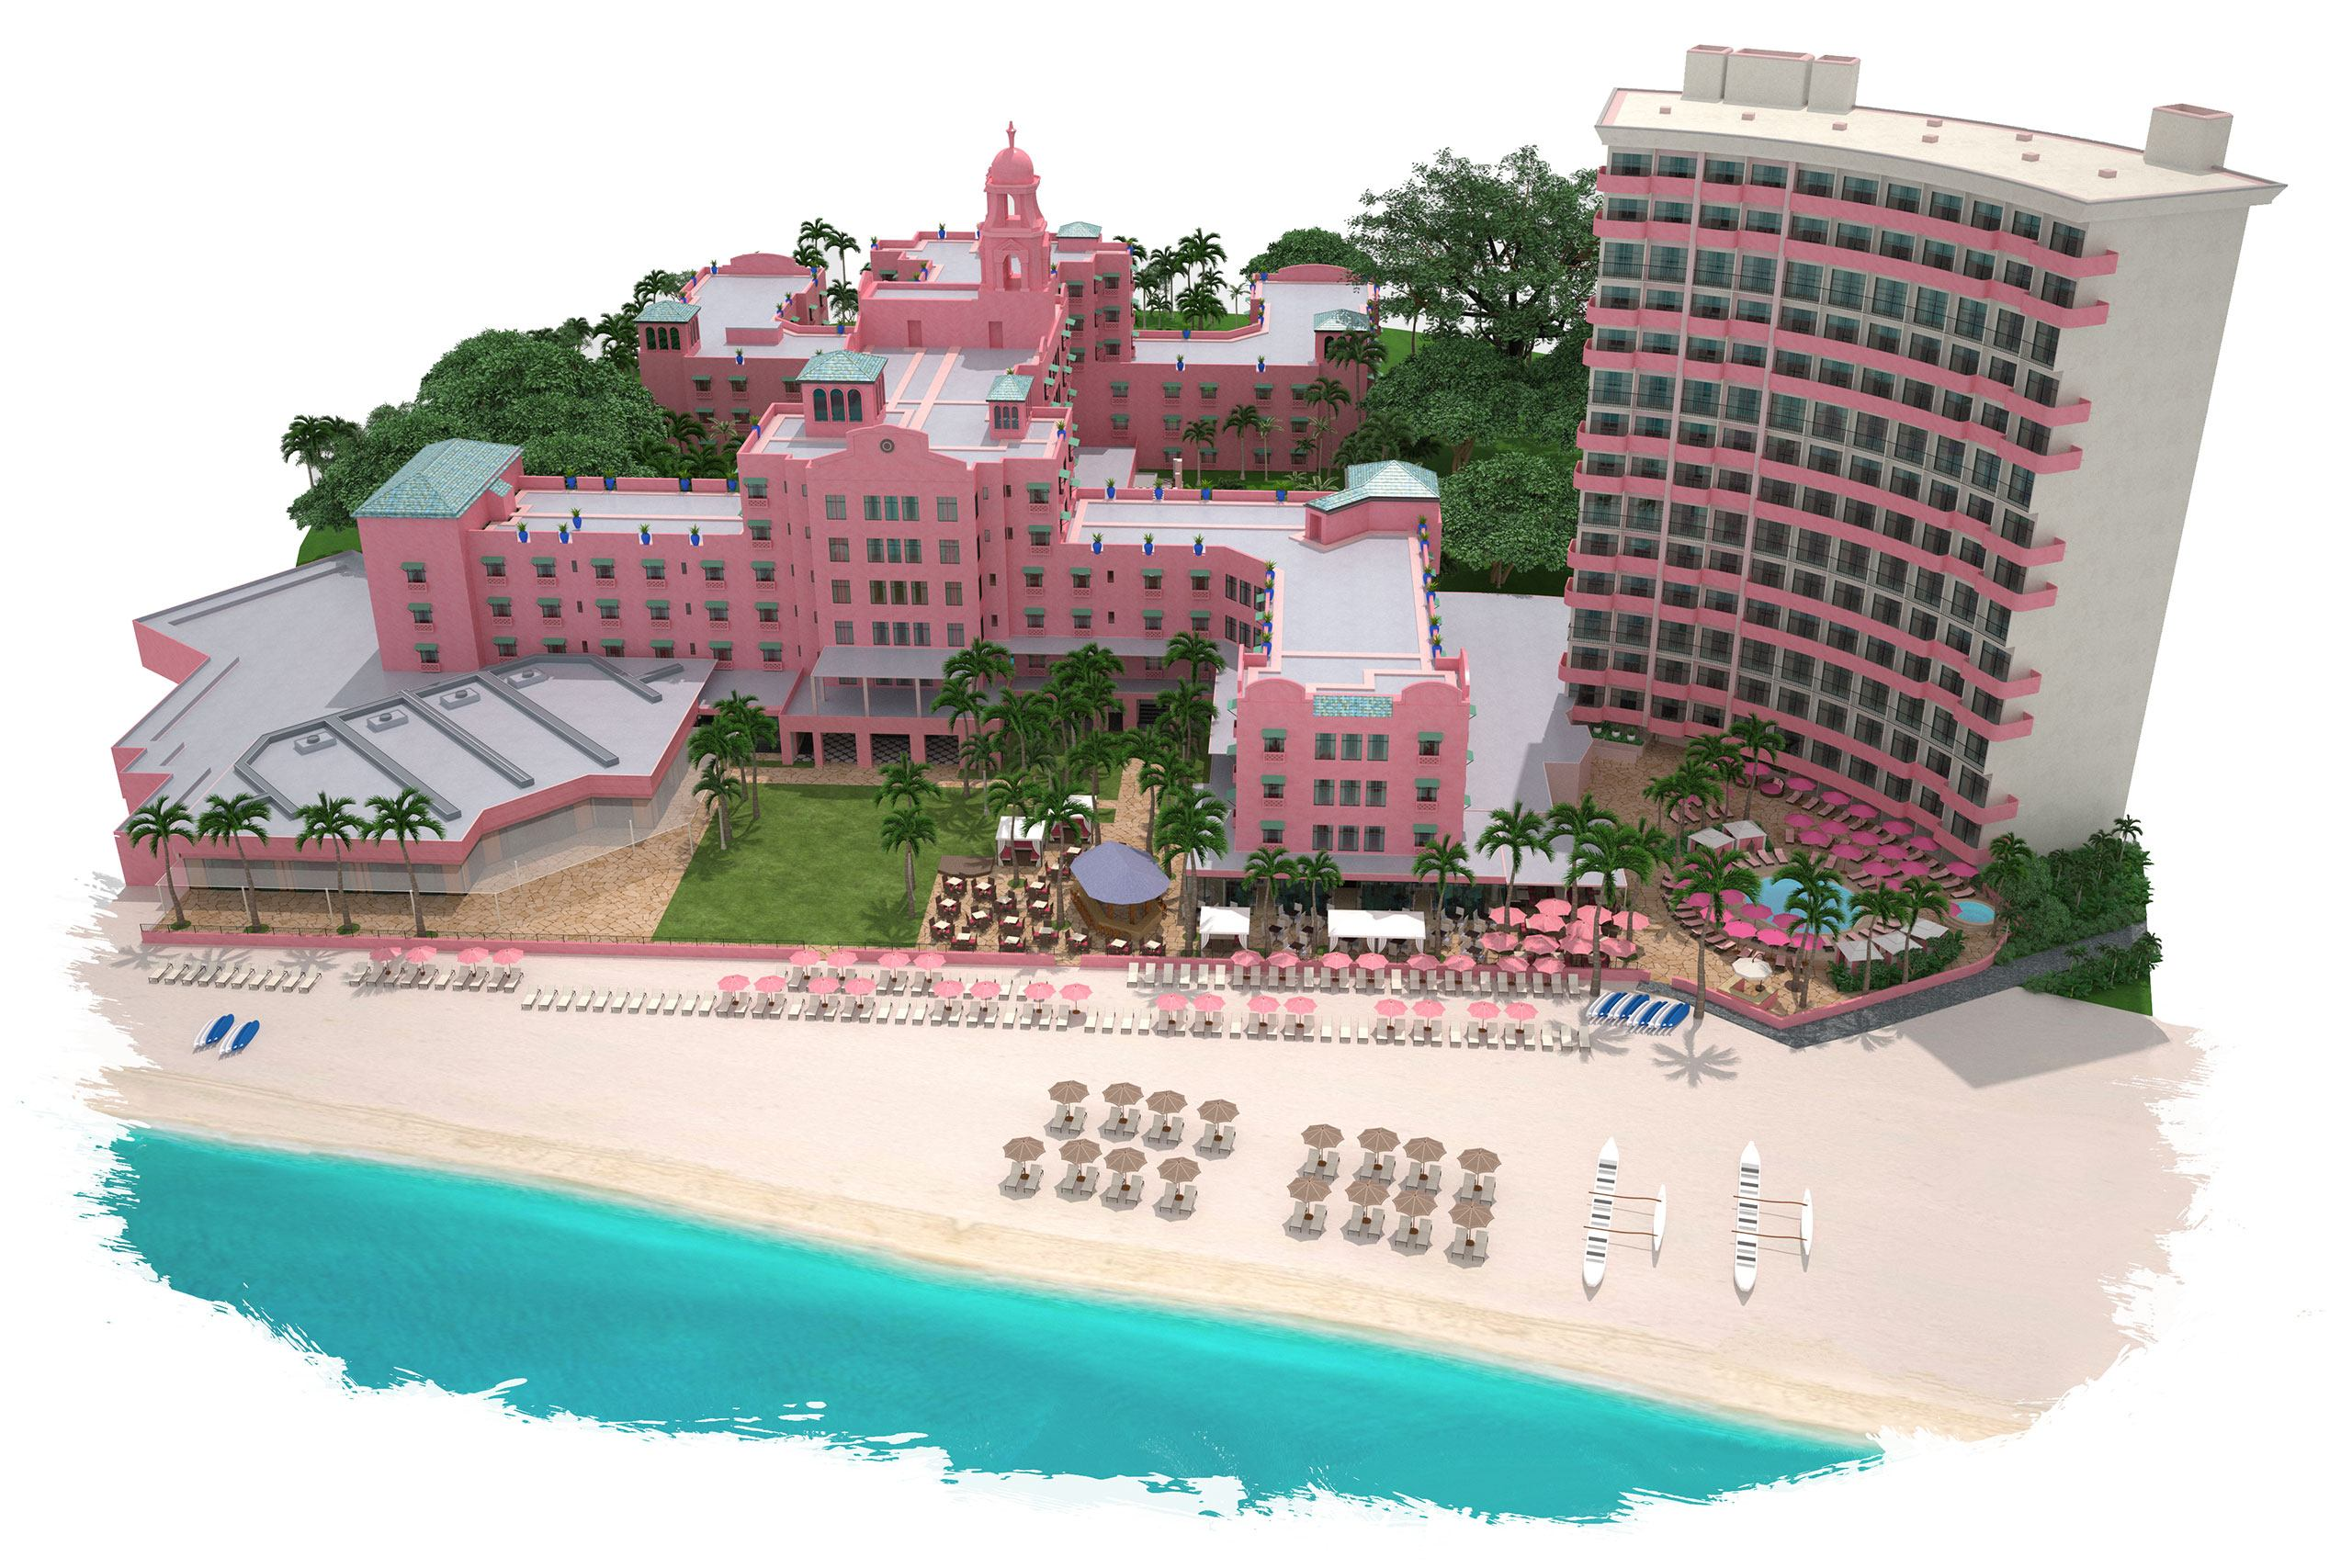 3D rendering of a resort building on the beach